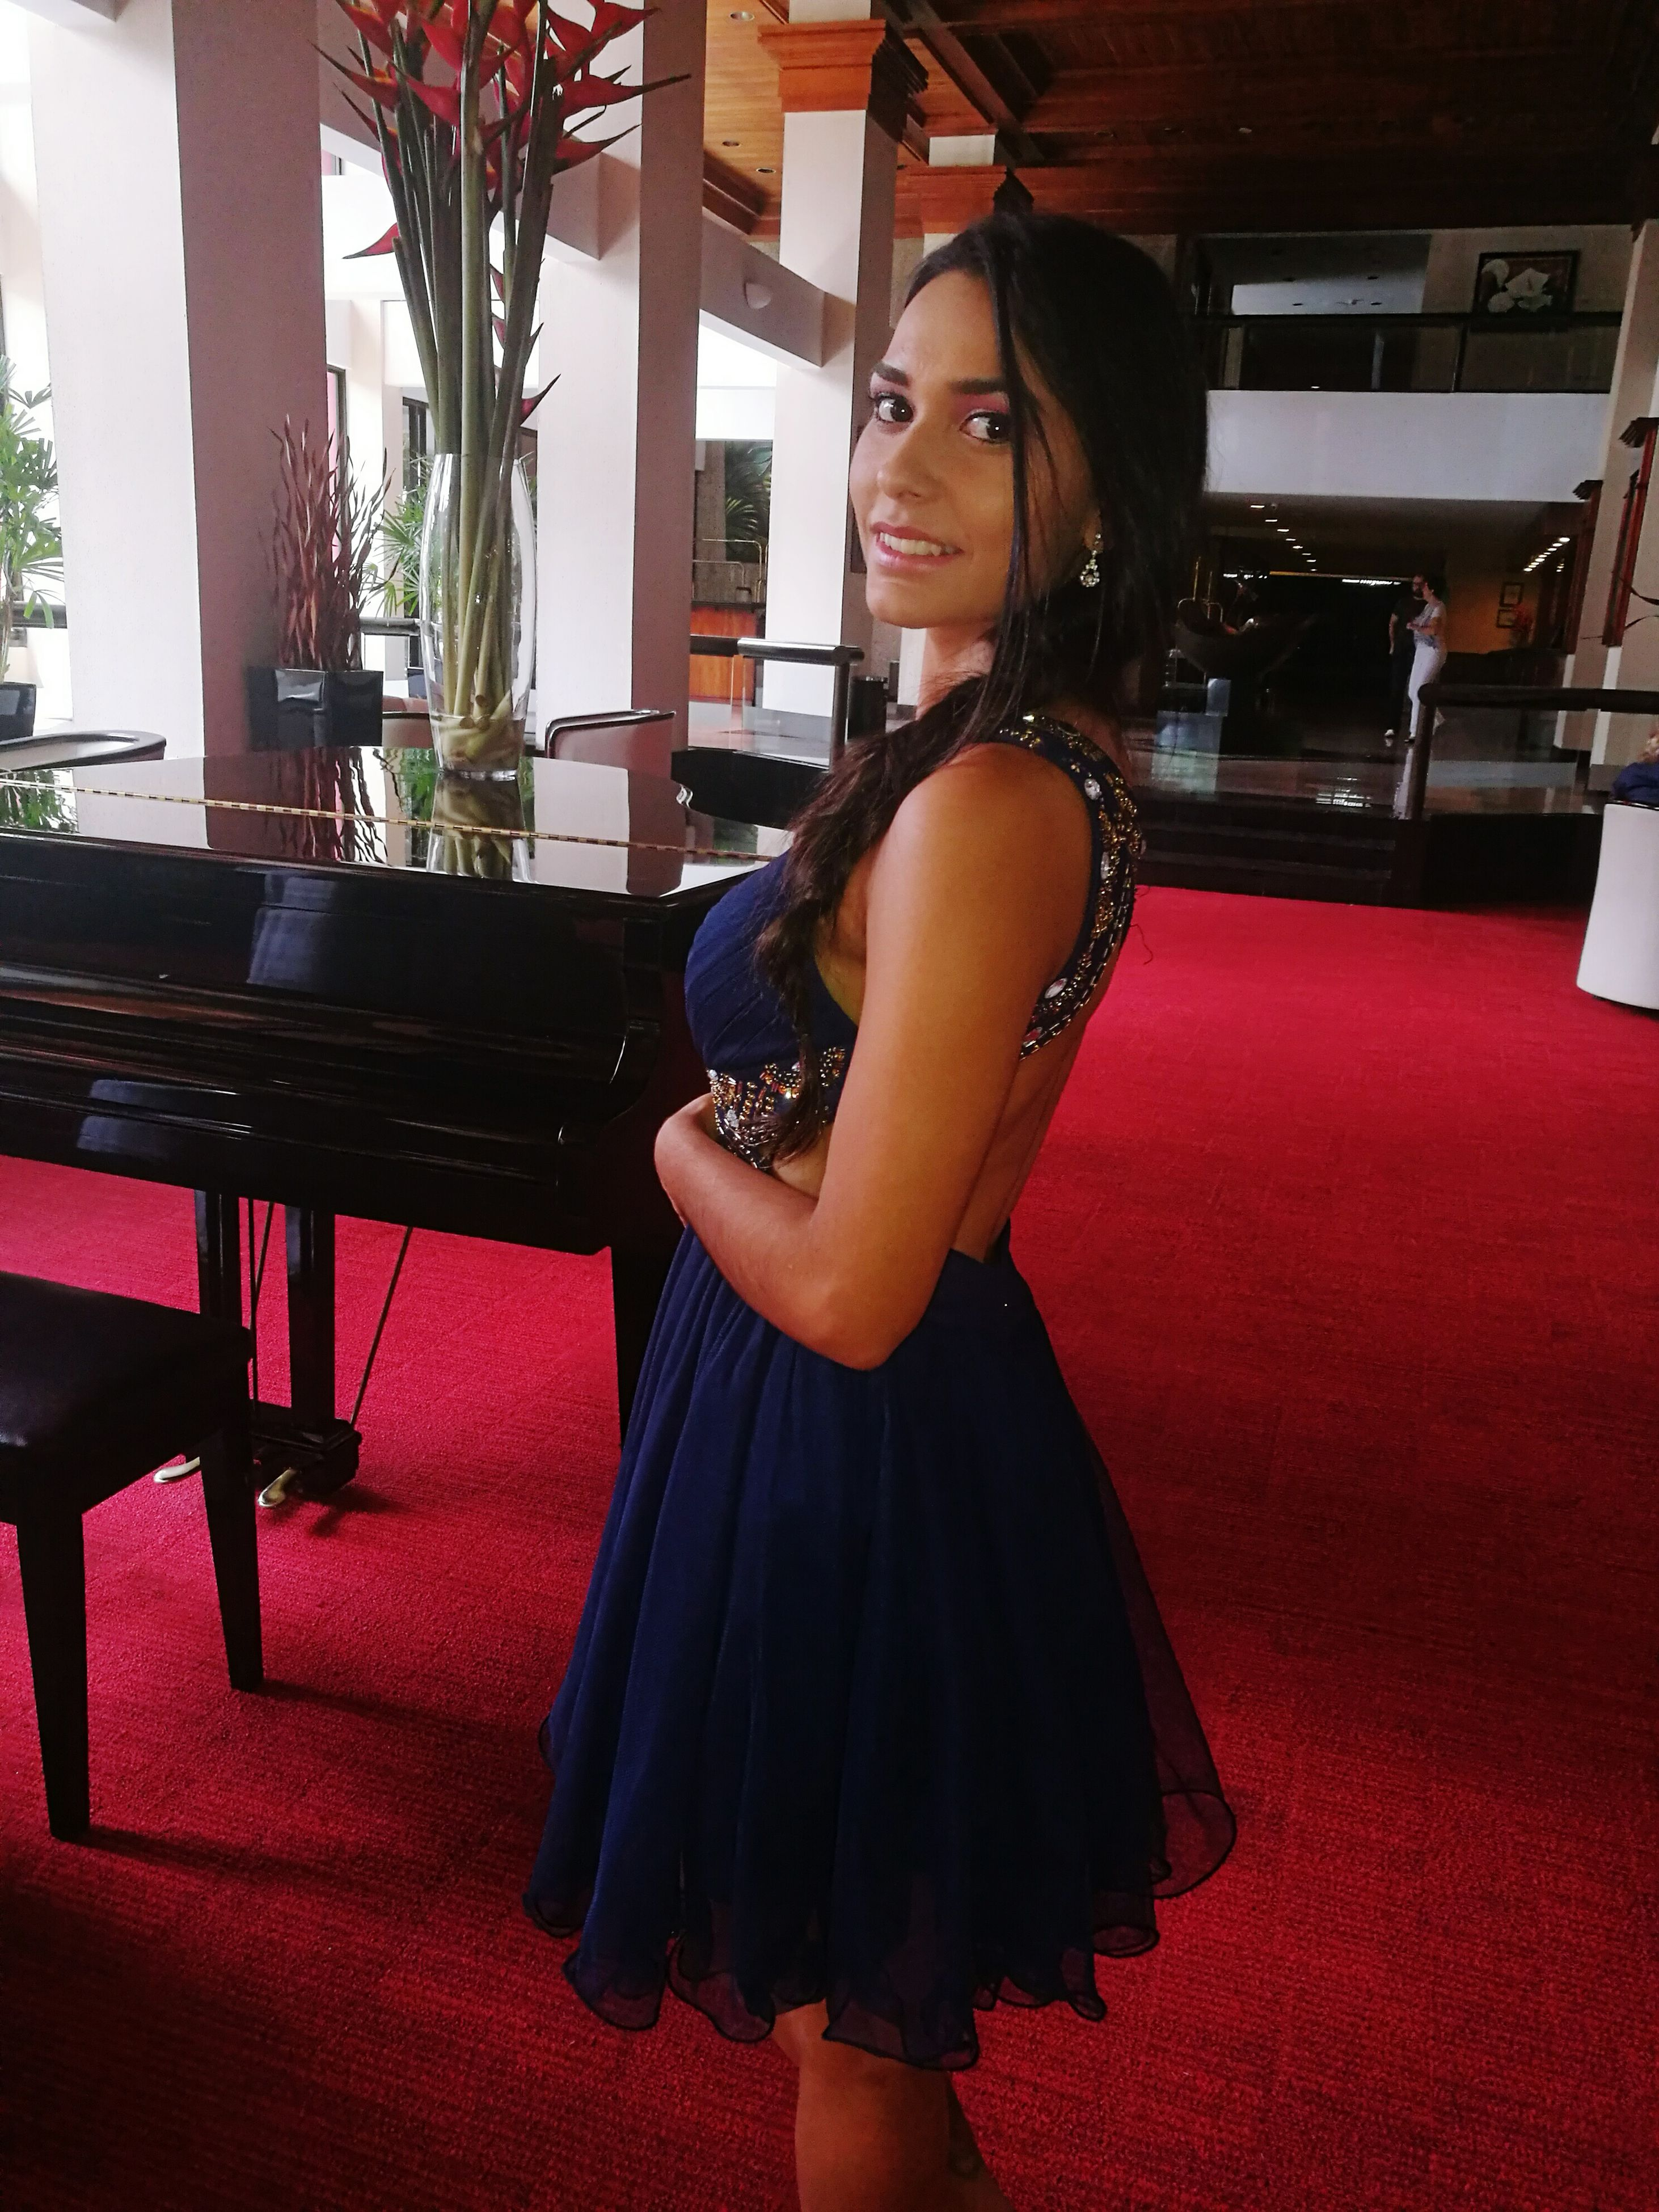 indoors, one person, piano, arts culture and entertainment, adults only, music, one woman only, beauty, people, adult, pianist, performance, only women, one young woman only, musical instrument, beautiful woman, young adult, day